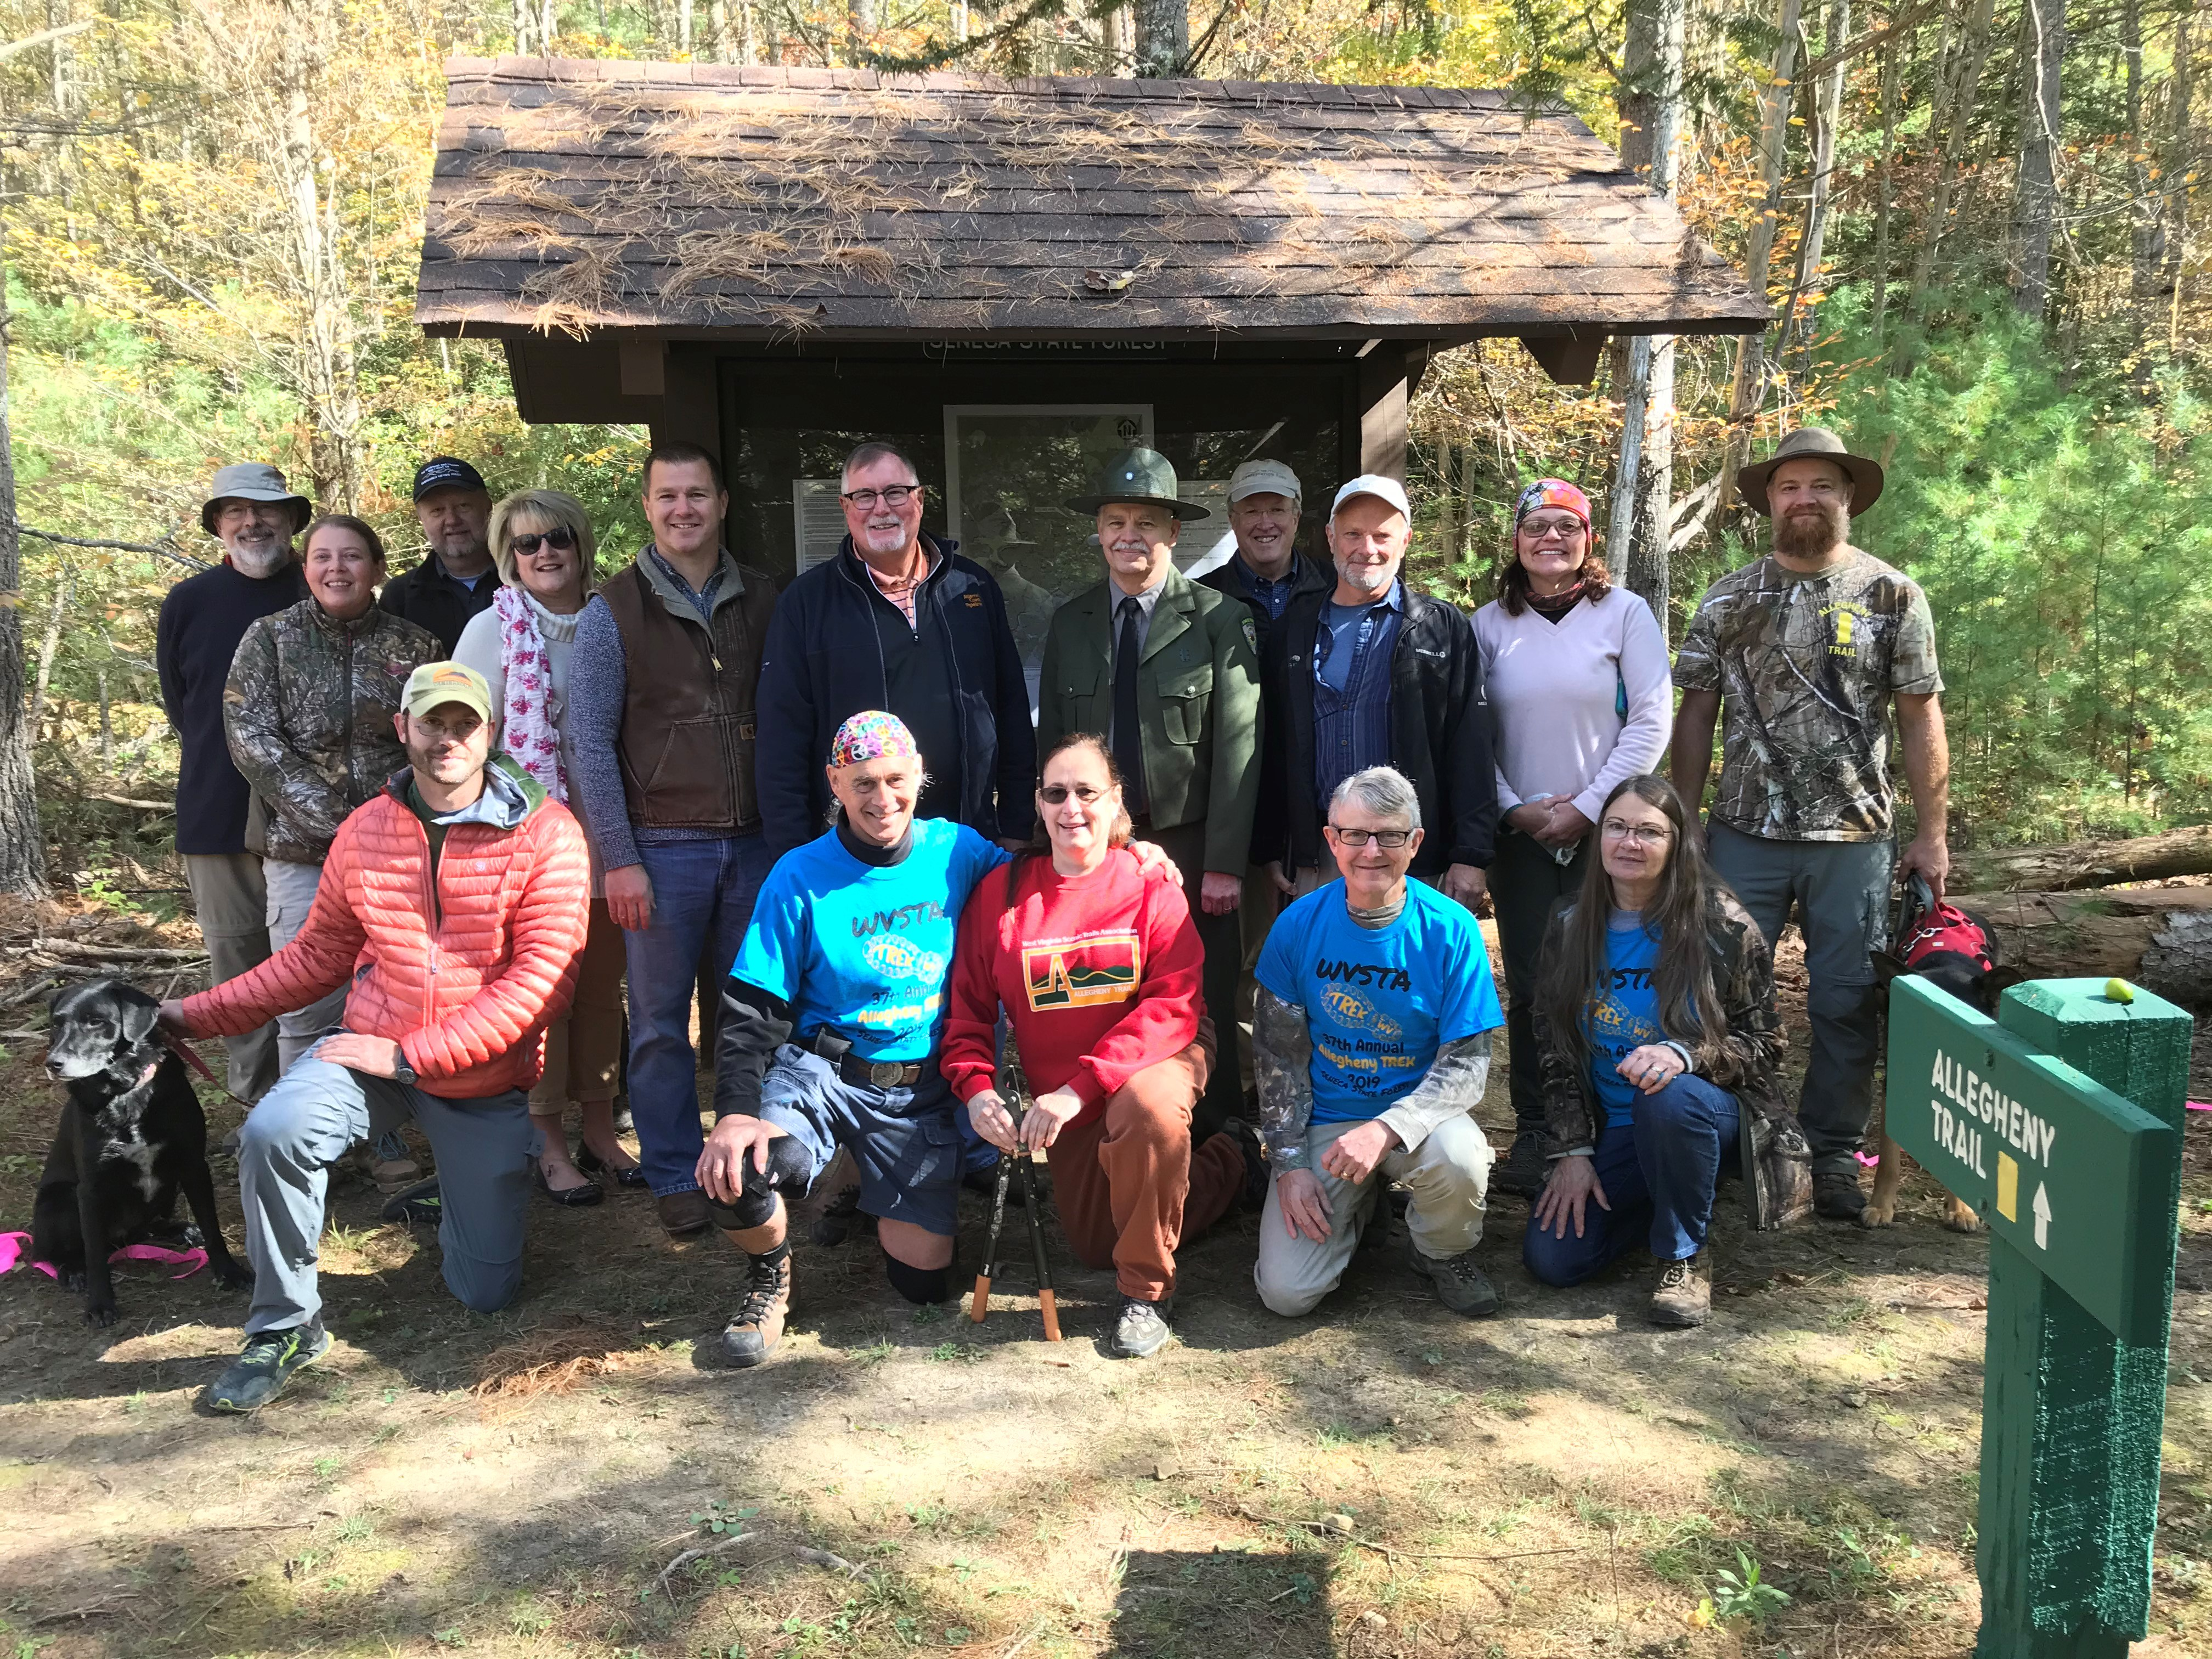 ACP-Celebrates-Conservation-Partnership-with-the-WV-Scenic-Trails-Association-